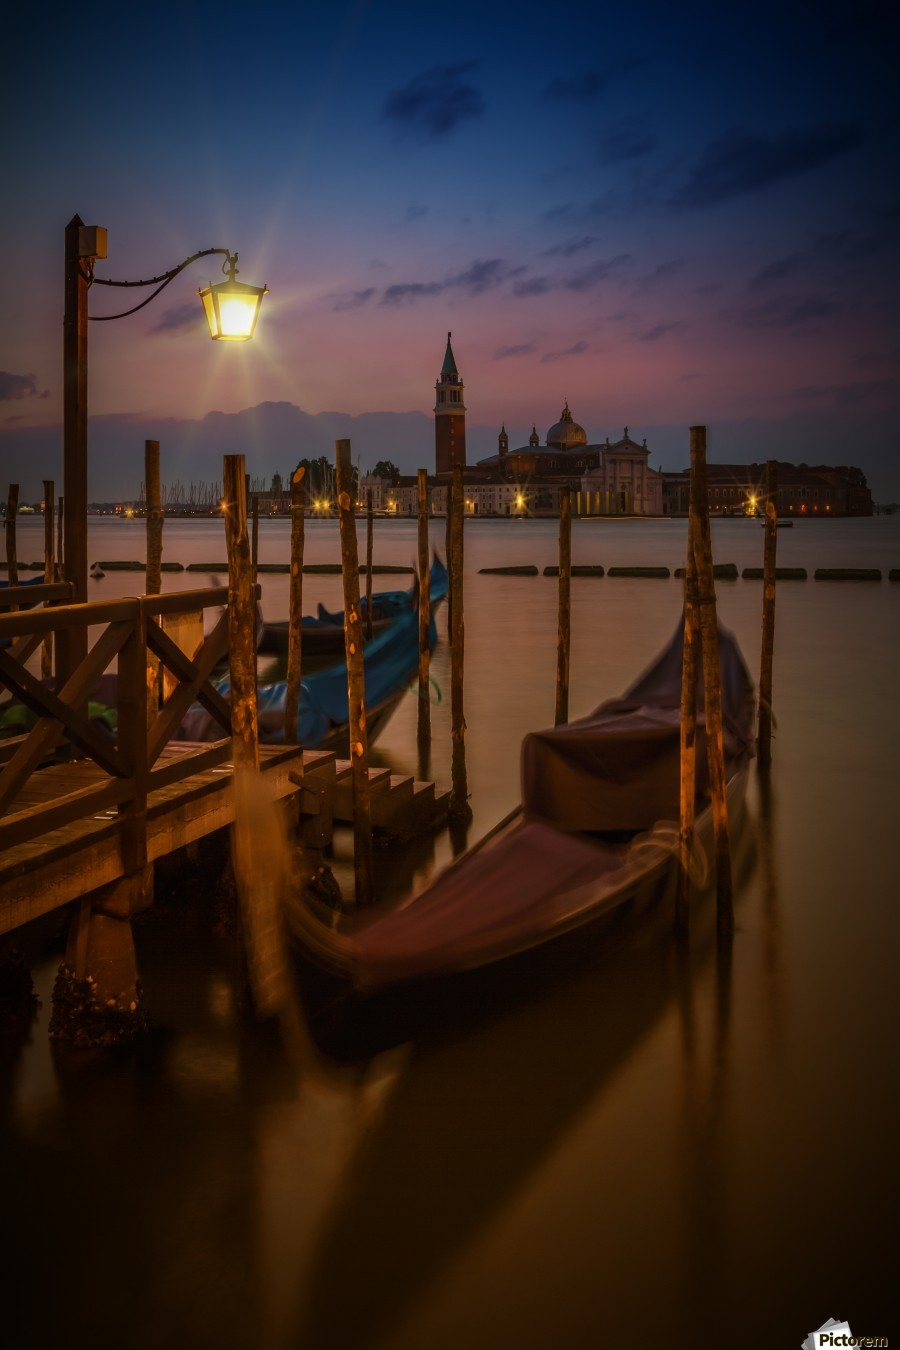 VENICE Gondolas during Blue Hour , Melanie Viola , ancient, architecture, attraction, blue, hour, boat, building, city, dark, dawn, dusk, europe, evening, famous, historic, historical, house, illuminated, italy, lamp, landmark, lighted, lights, line, longtime, megacity, morning, night, old, old town, orange, outdoor, outdoors, popular, reflection, san giorgio maggiore, san marco, shore, shoreline, sight, sightseeing, sky, stream, sunrise, sunset, surface, town, urban, venice, water, waterside, gondola, church, island, grand, canal